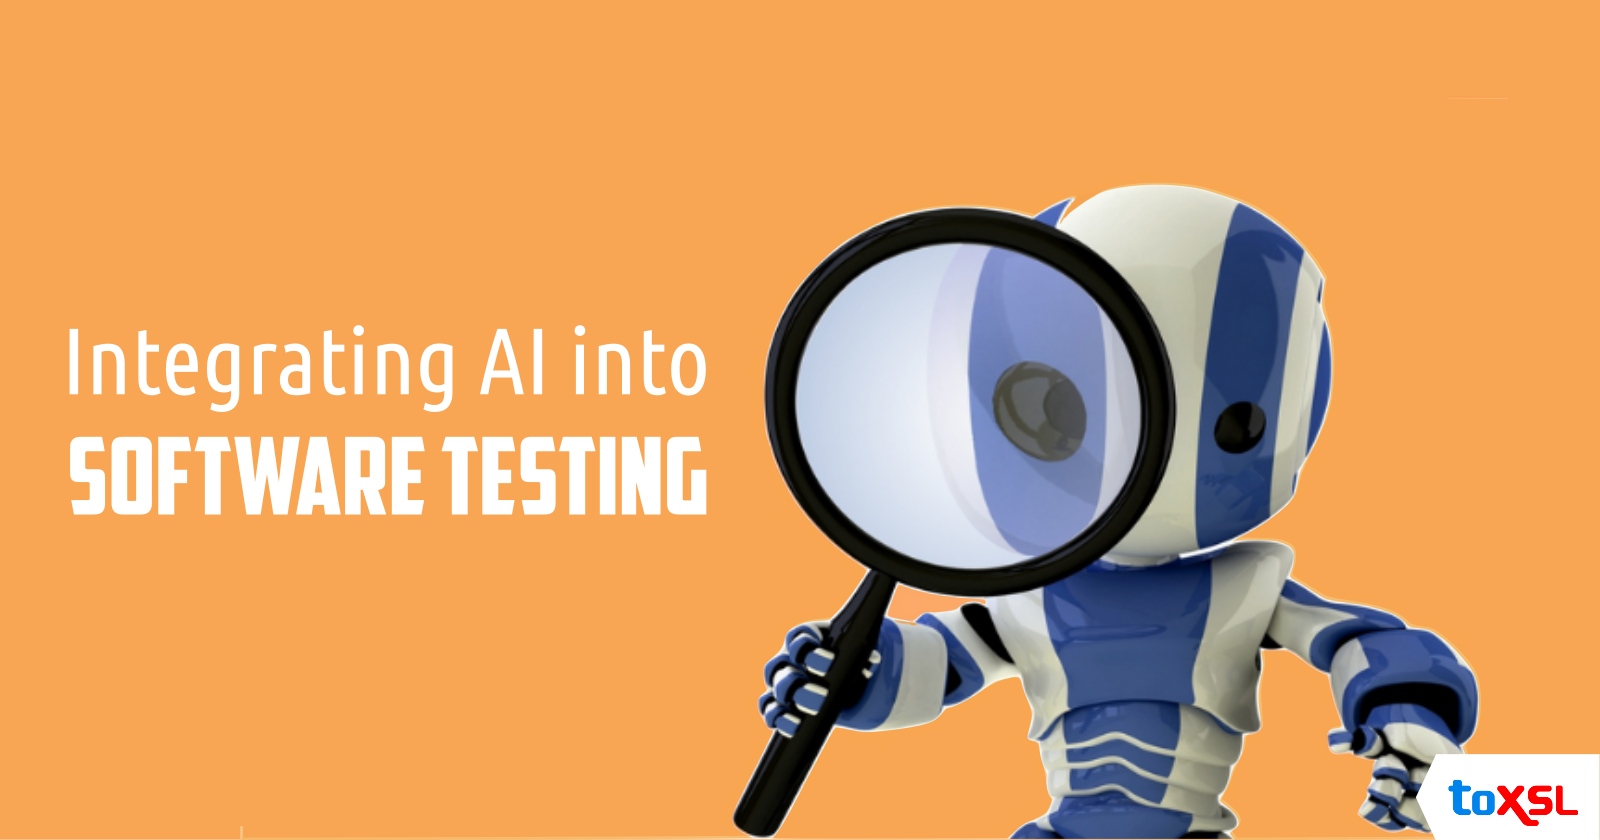 Integrating AI into Software Testing